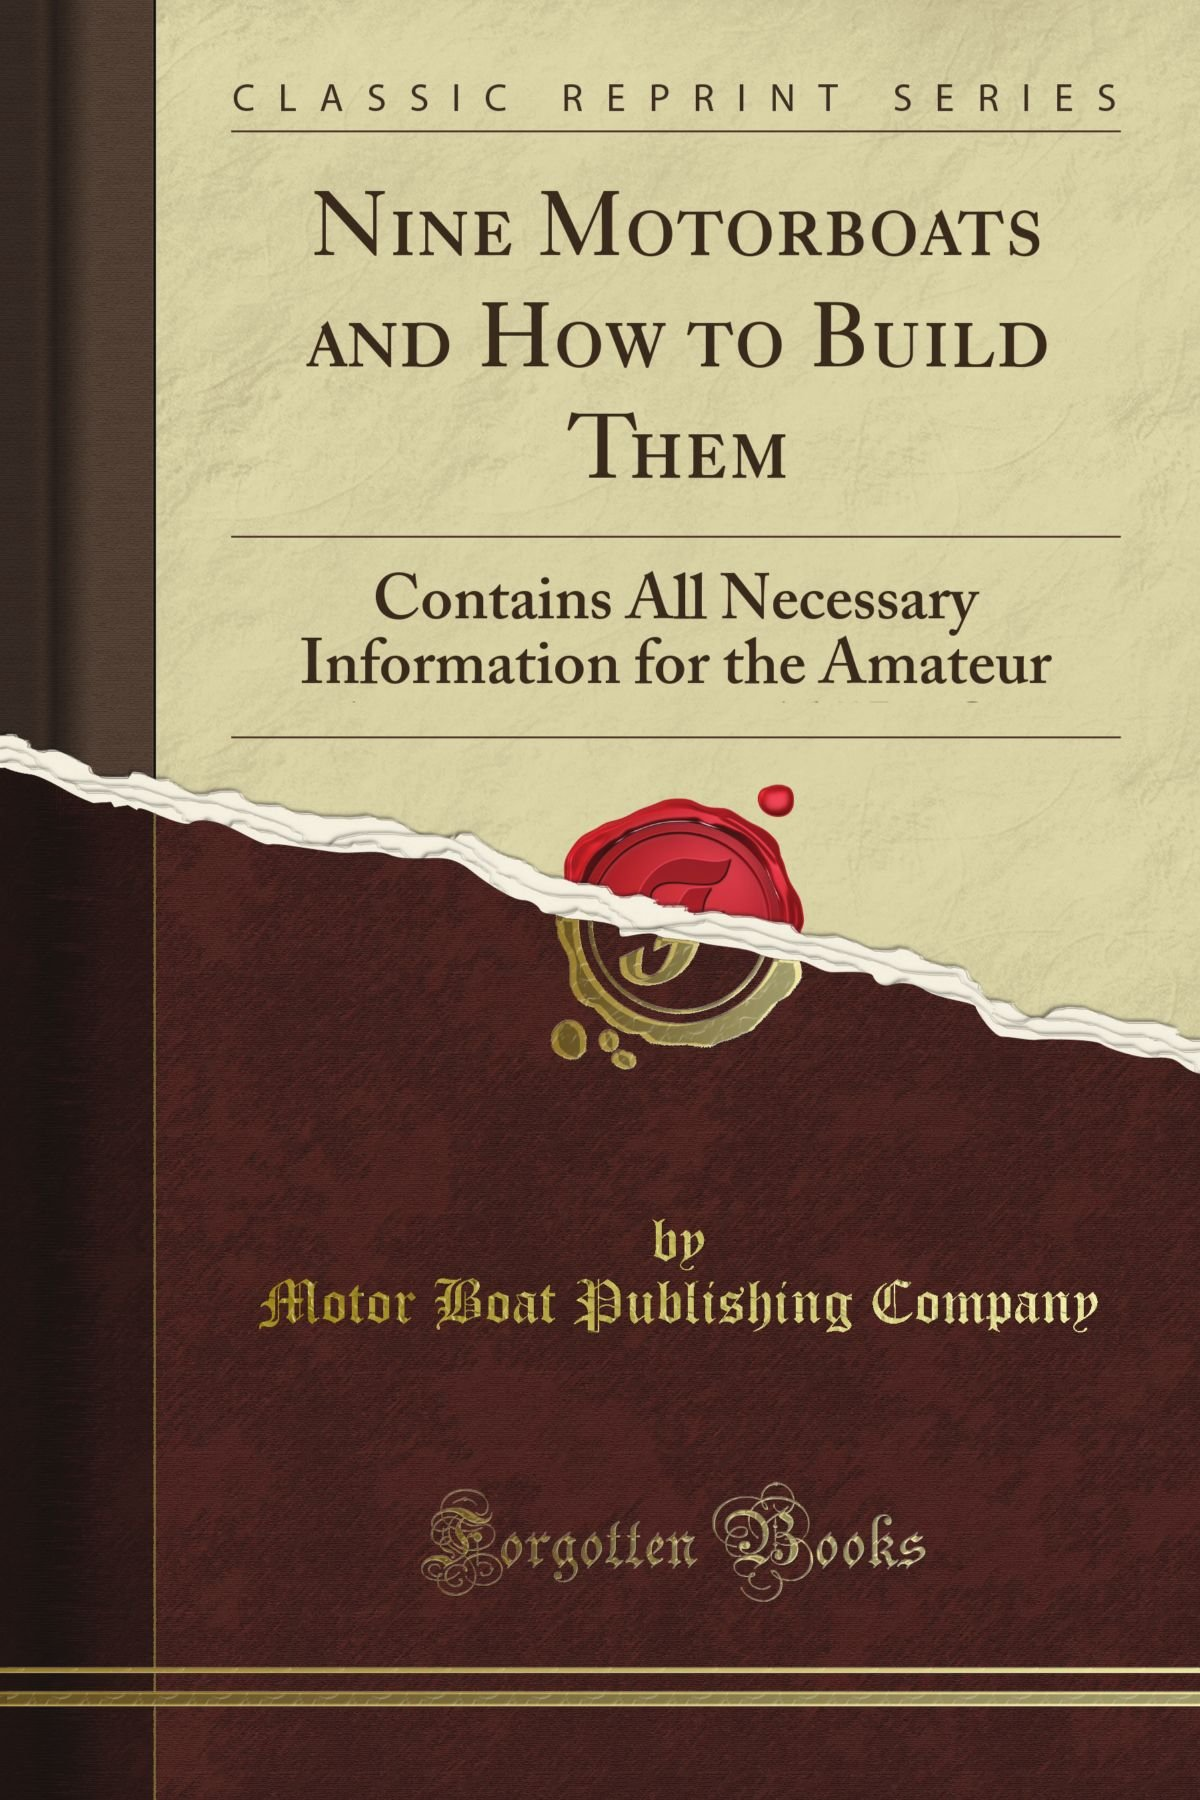 Download Nine Motorboats and How to Build Them: A Book of Complete Building Plans and Instruction, Which Contains All Necessary Information for the Amateur Who Wants to Build His Own Boat (Classic Reprint) PDF